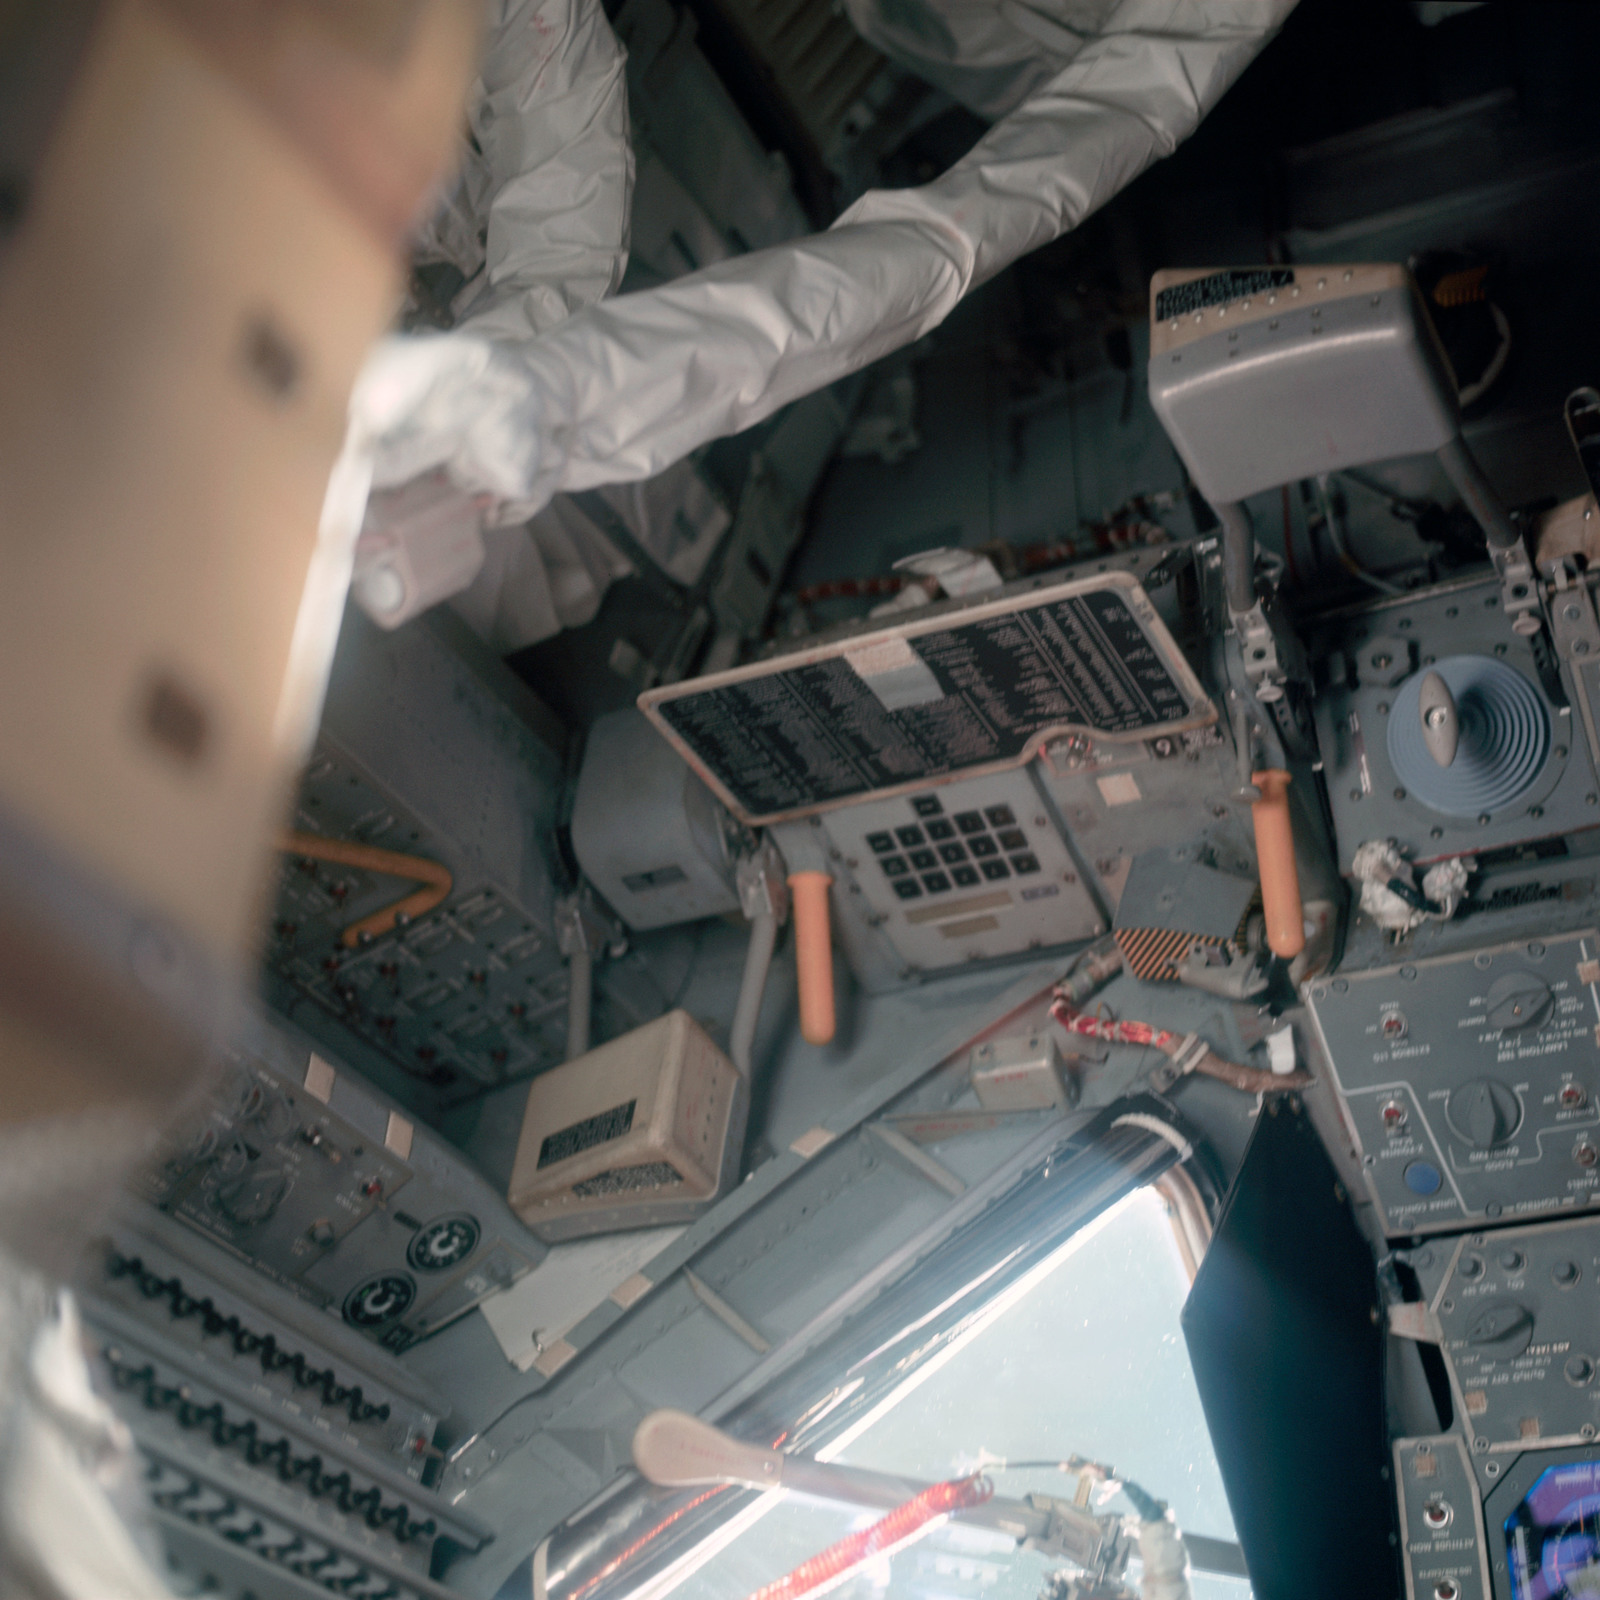 AS11-36-5392 - Apollo 11 - Apollo 11 Mission image - Fight controls inside the Lunar Module